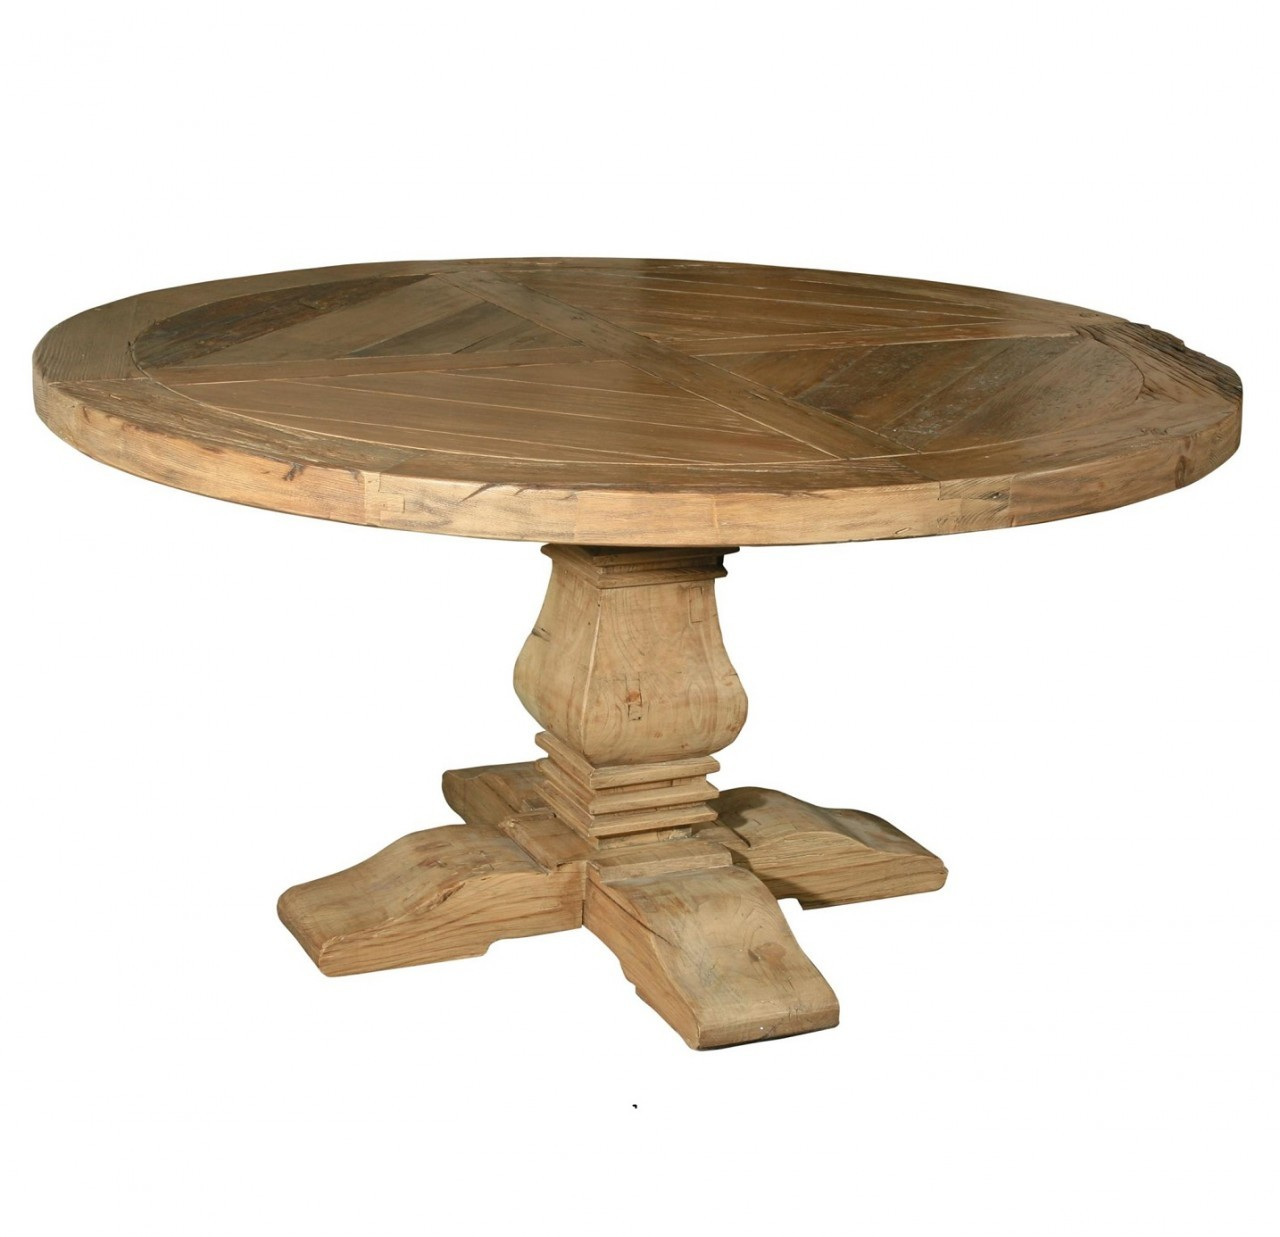 1280x1237px 8 Awesome Reclaimed Wood Round Dining Room Table Picture in Dining Room